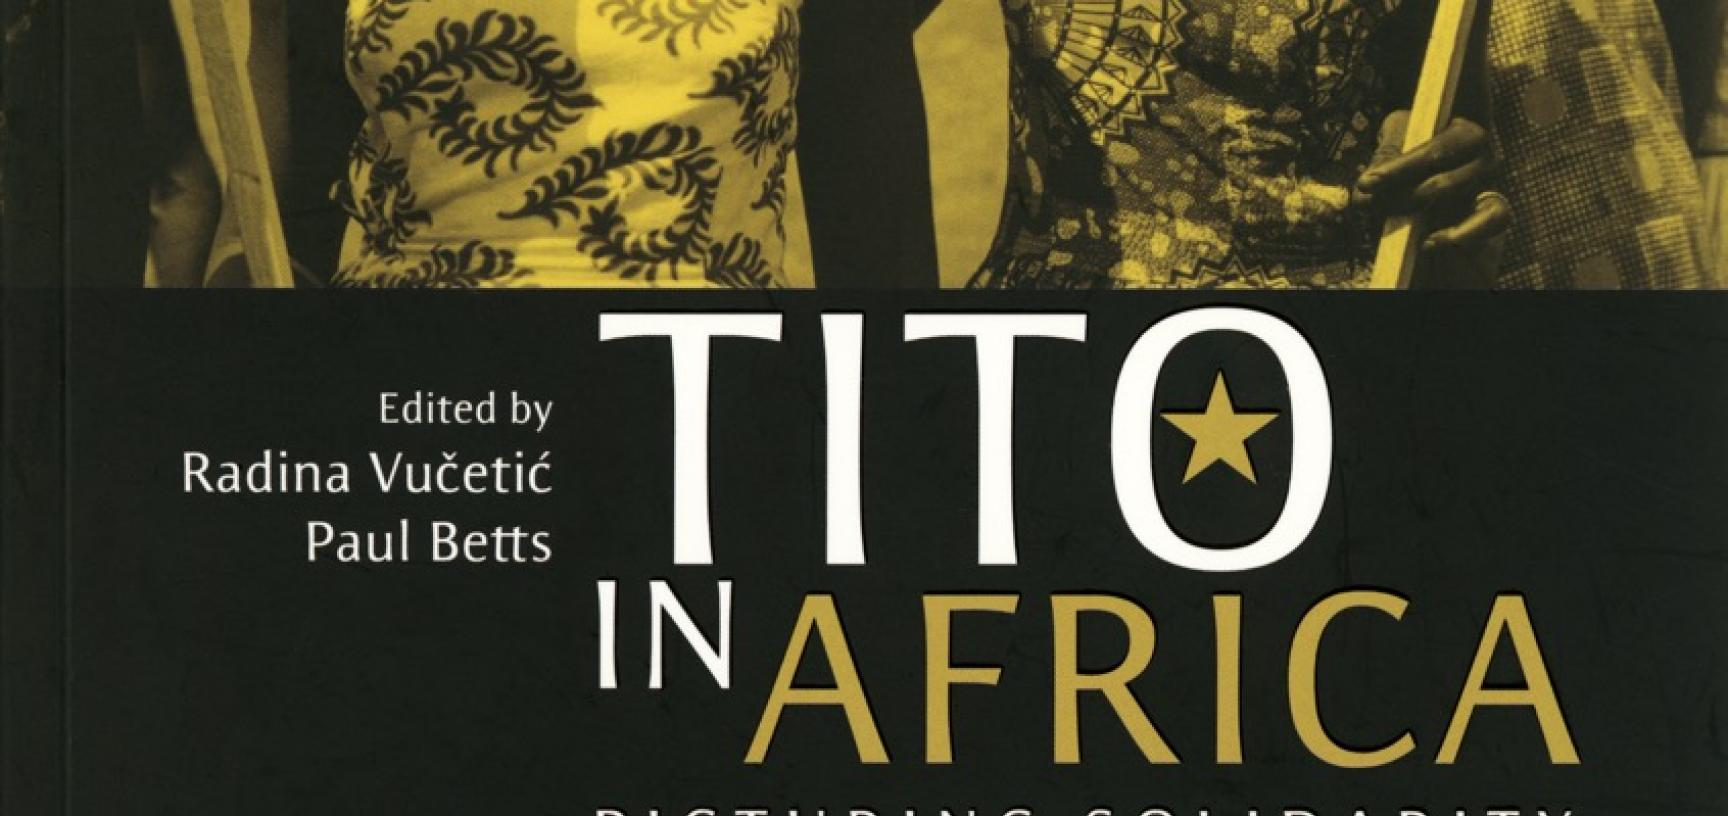 Radina Vučetić and Paul Betts (eds.), Tito in Africa: Picturing Solidarity (Belgrade: Museum of Yugoslavia, 2017). ISBN 978-86-84811-46-4